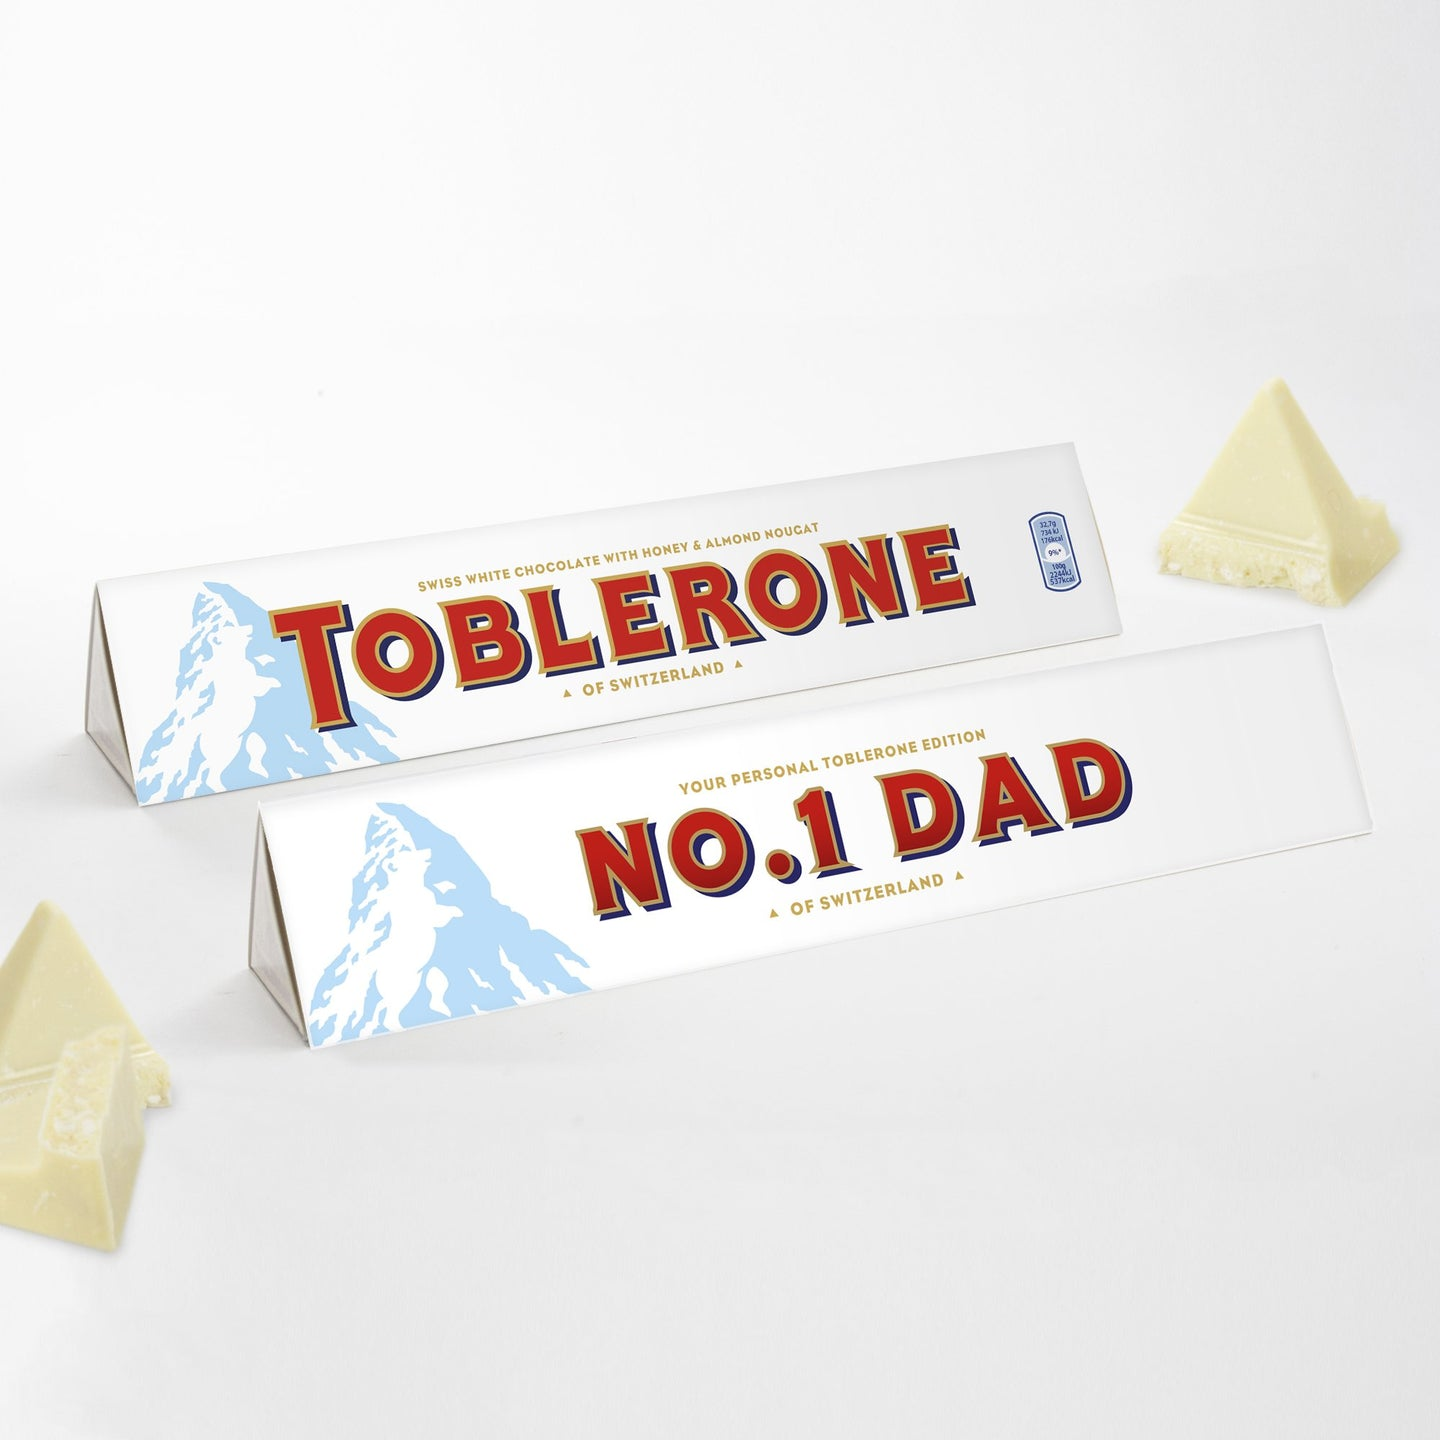 360g White Chocolate Toblerone with 'No.1 Dad' Sleeve